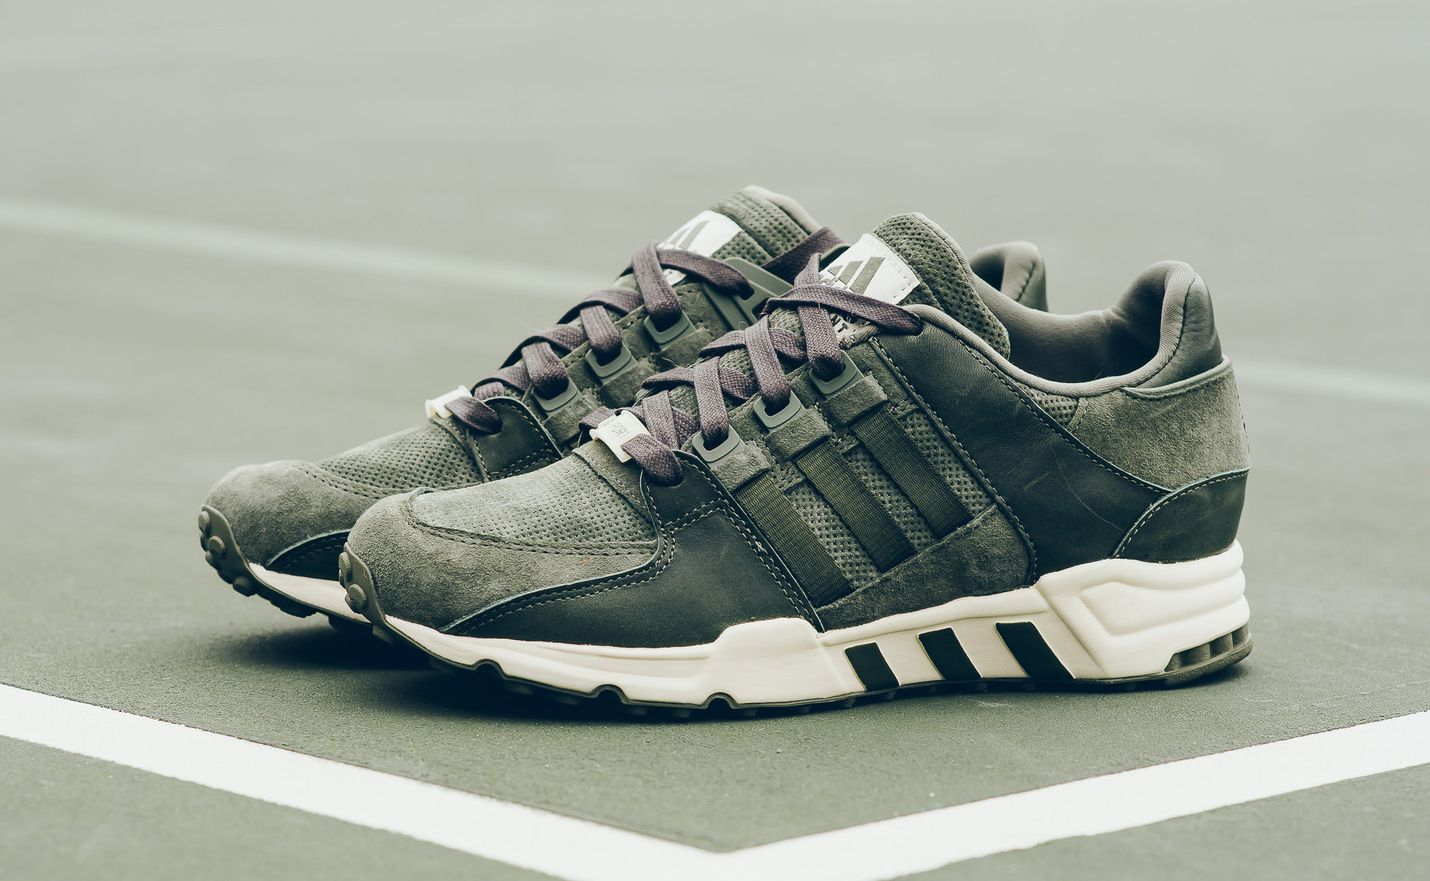 Adidas EQT Takes It Back to Germany